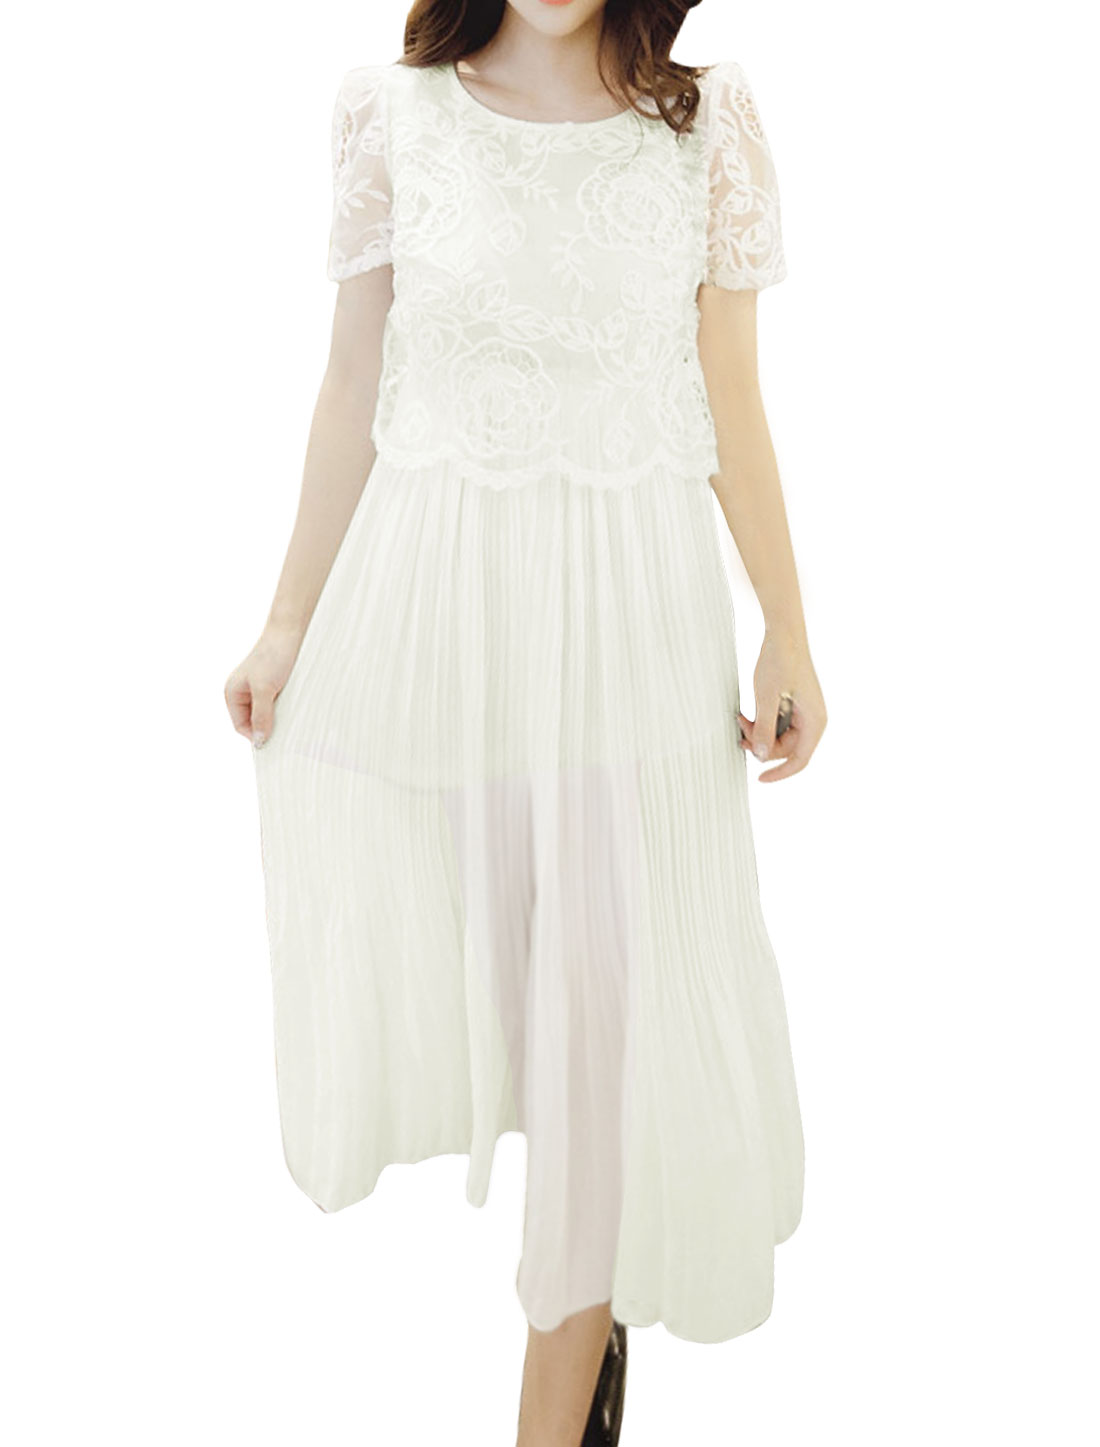 Women Flower Leaves Embroidery Pleated Midi Dress White S